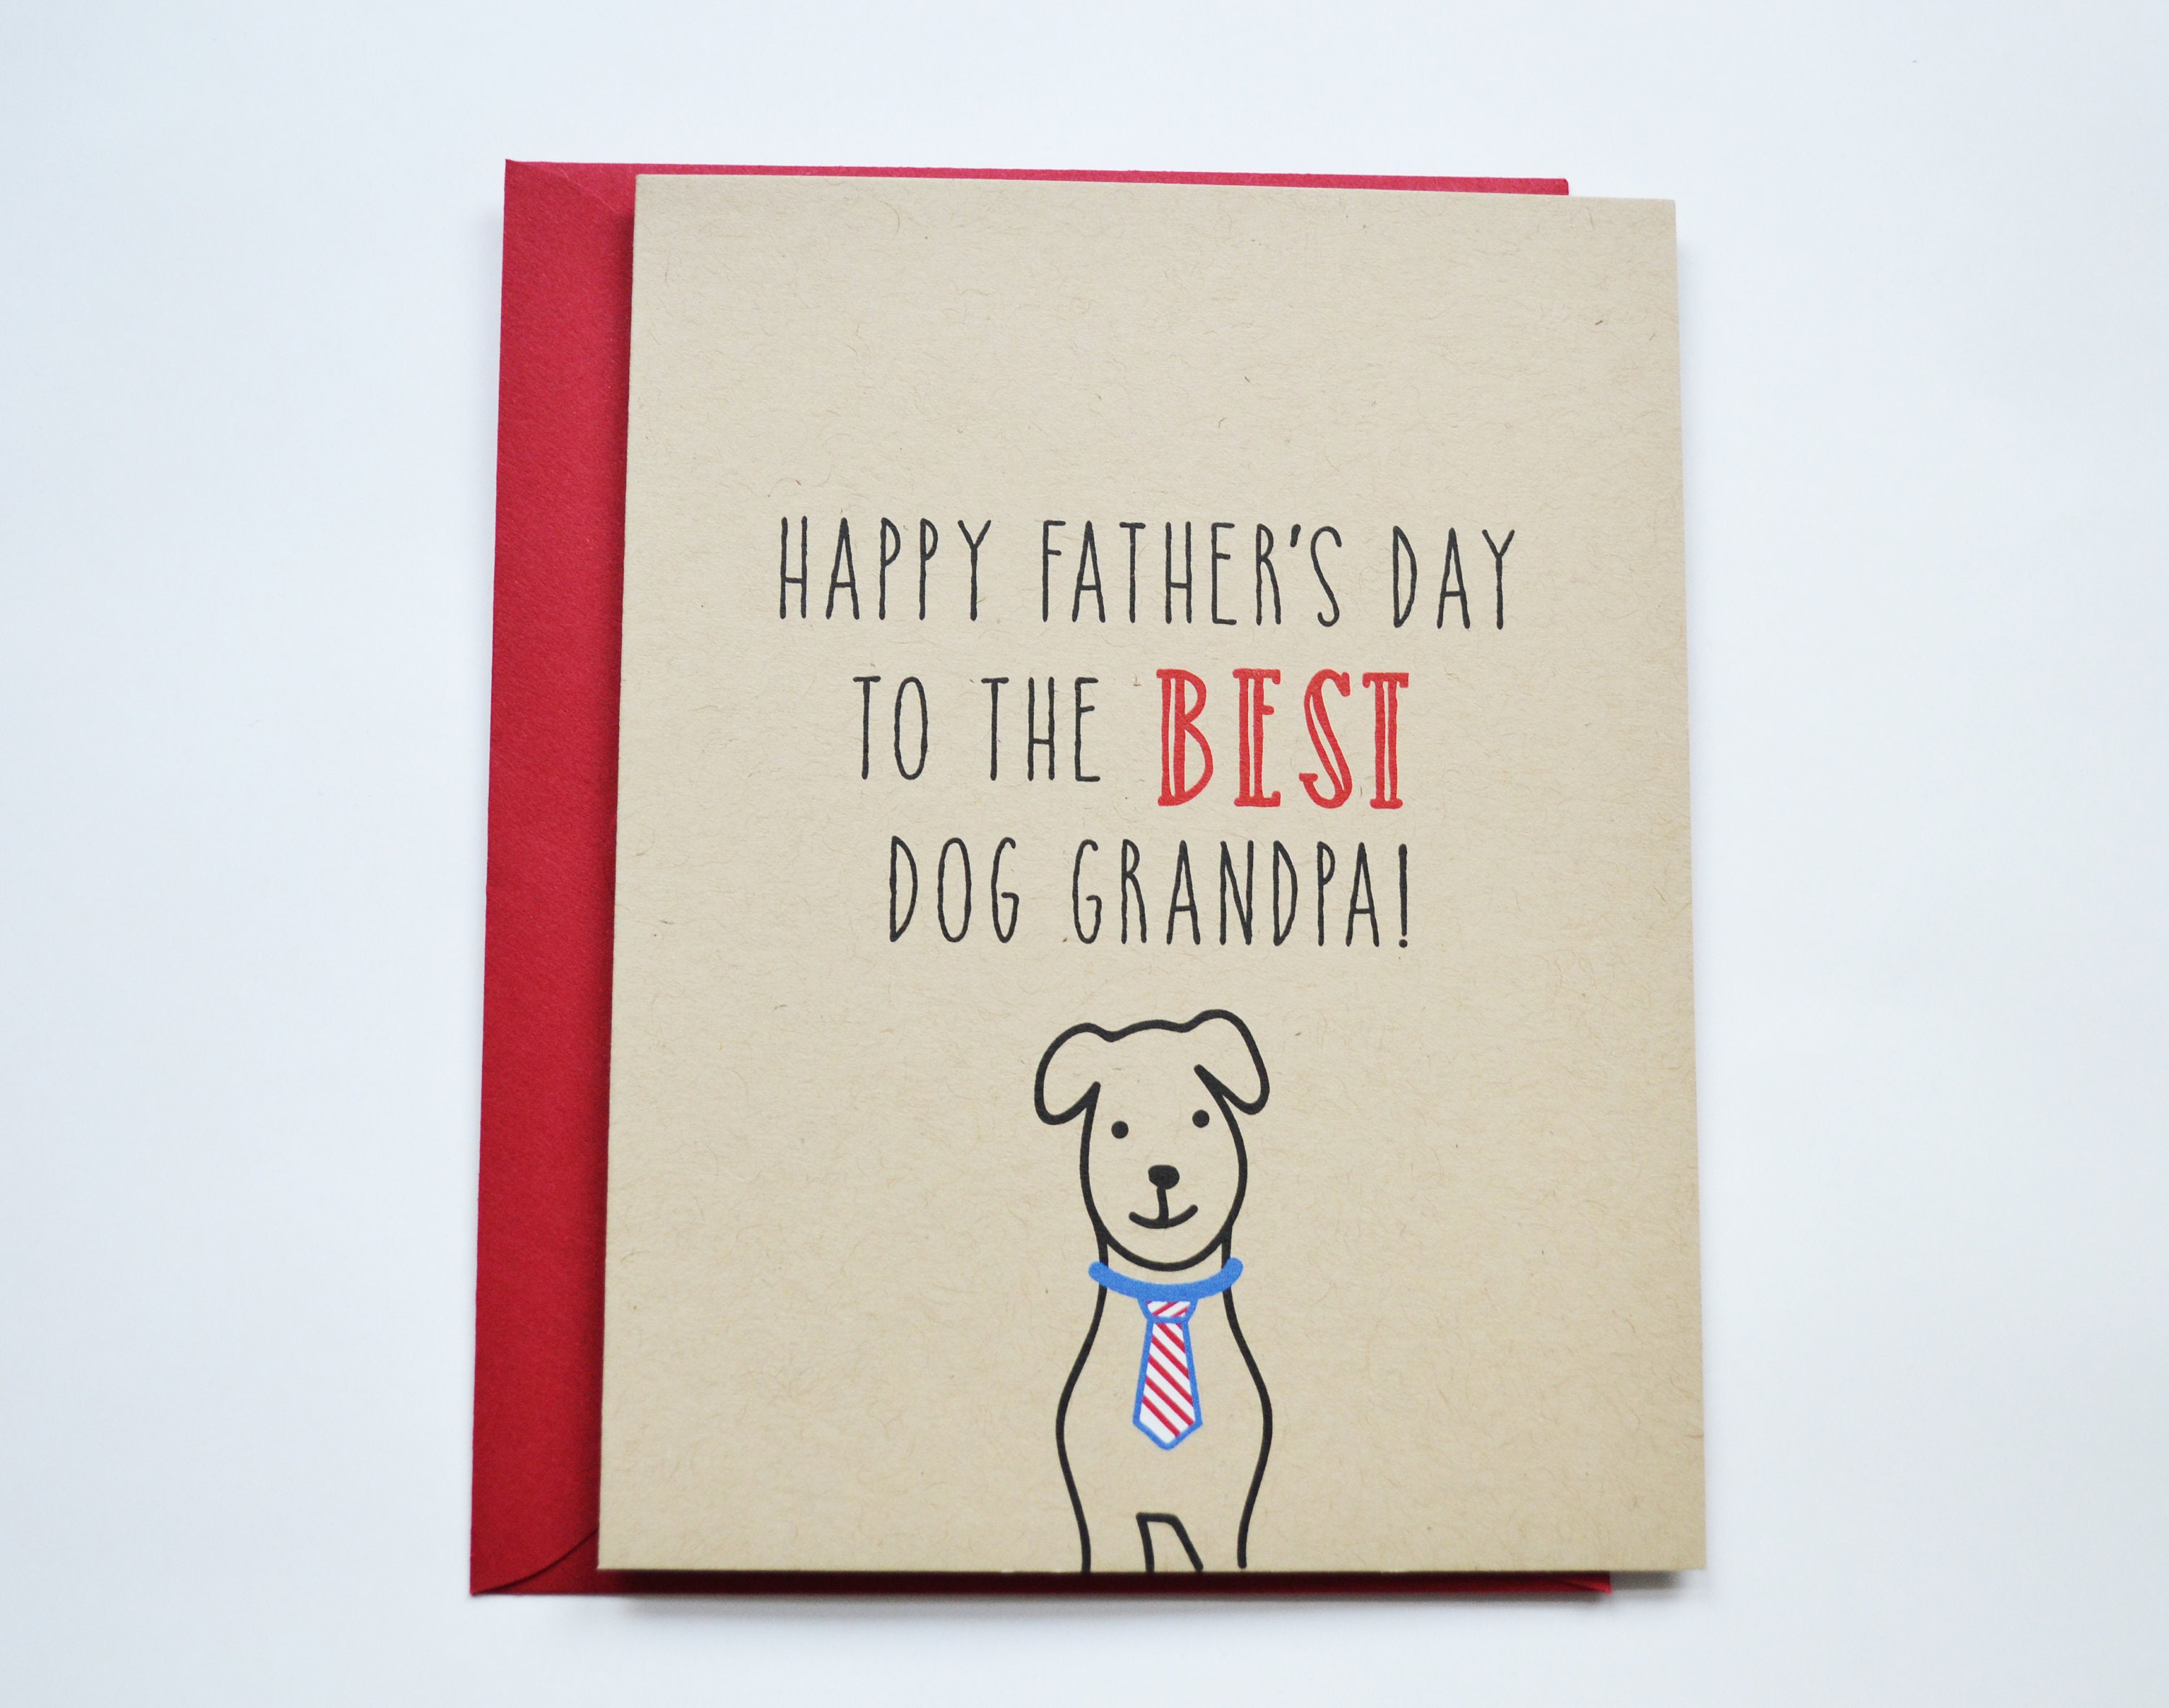 Happy Fathers Day Card For Dog Grandpa Dog Fathers Day Card For